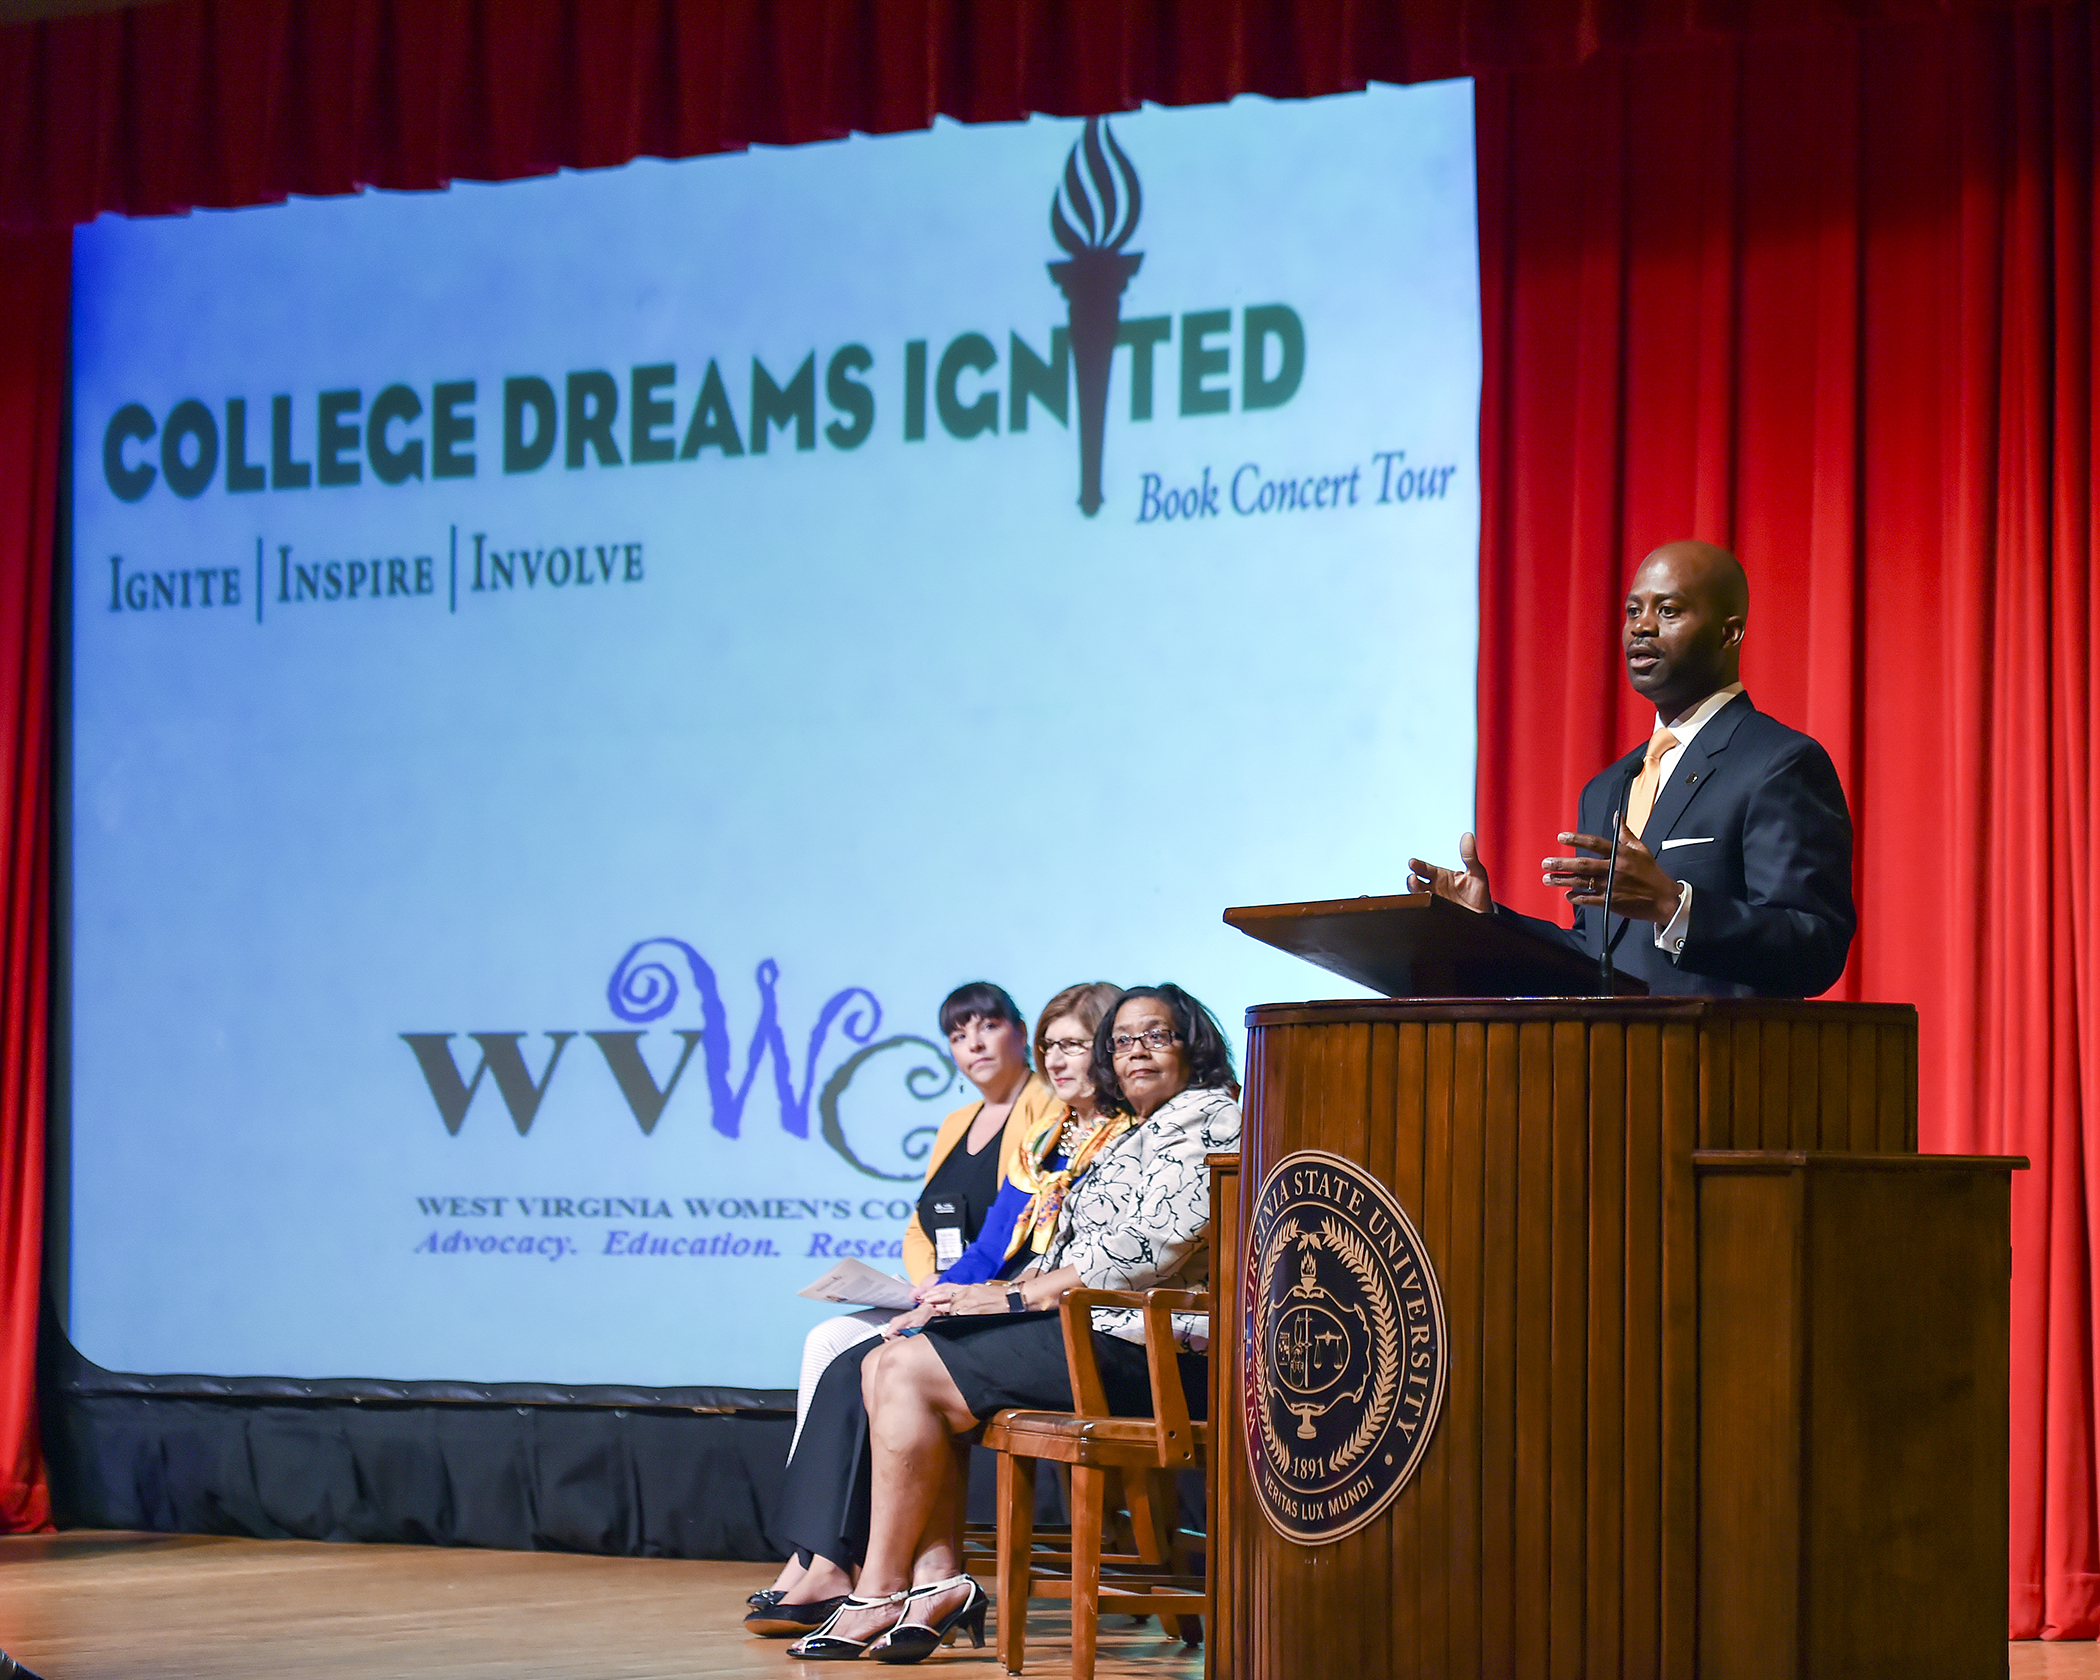 President Jenkins speaks at College Dreams Ignited